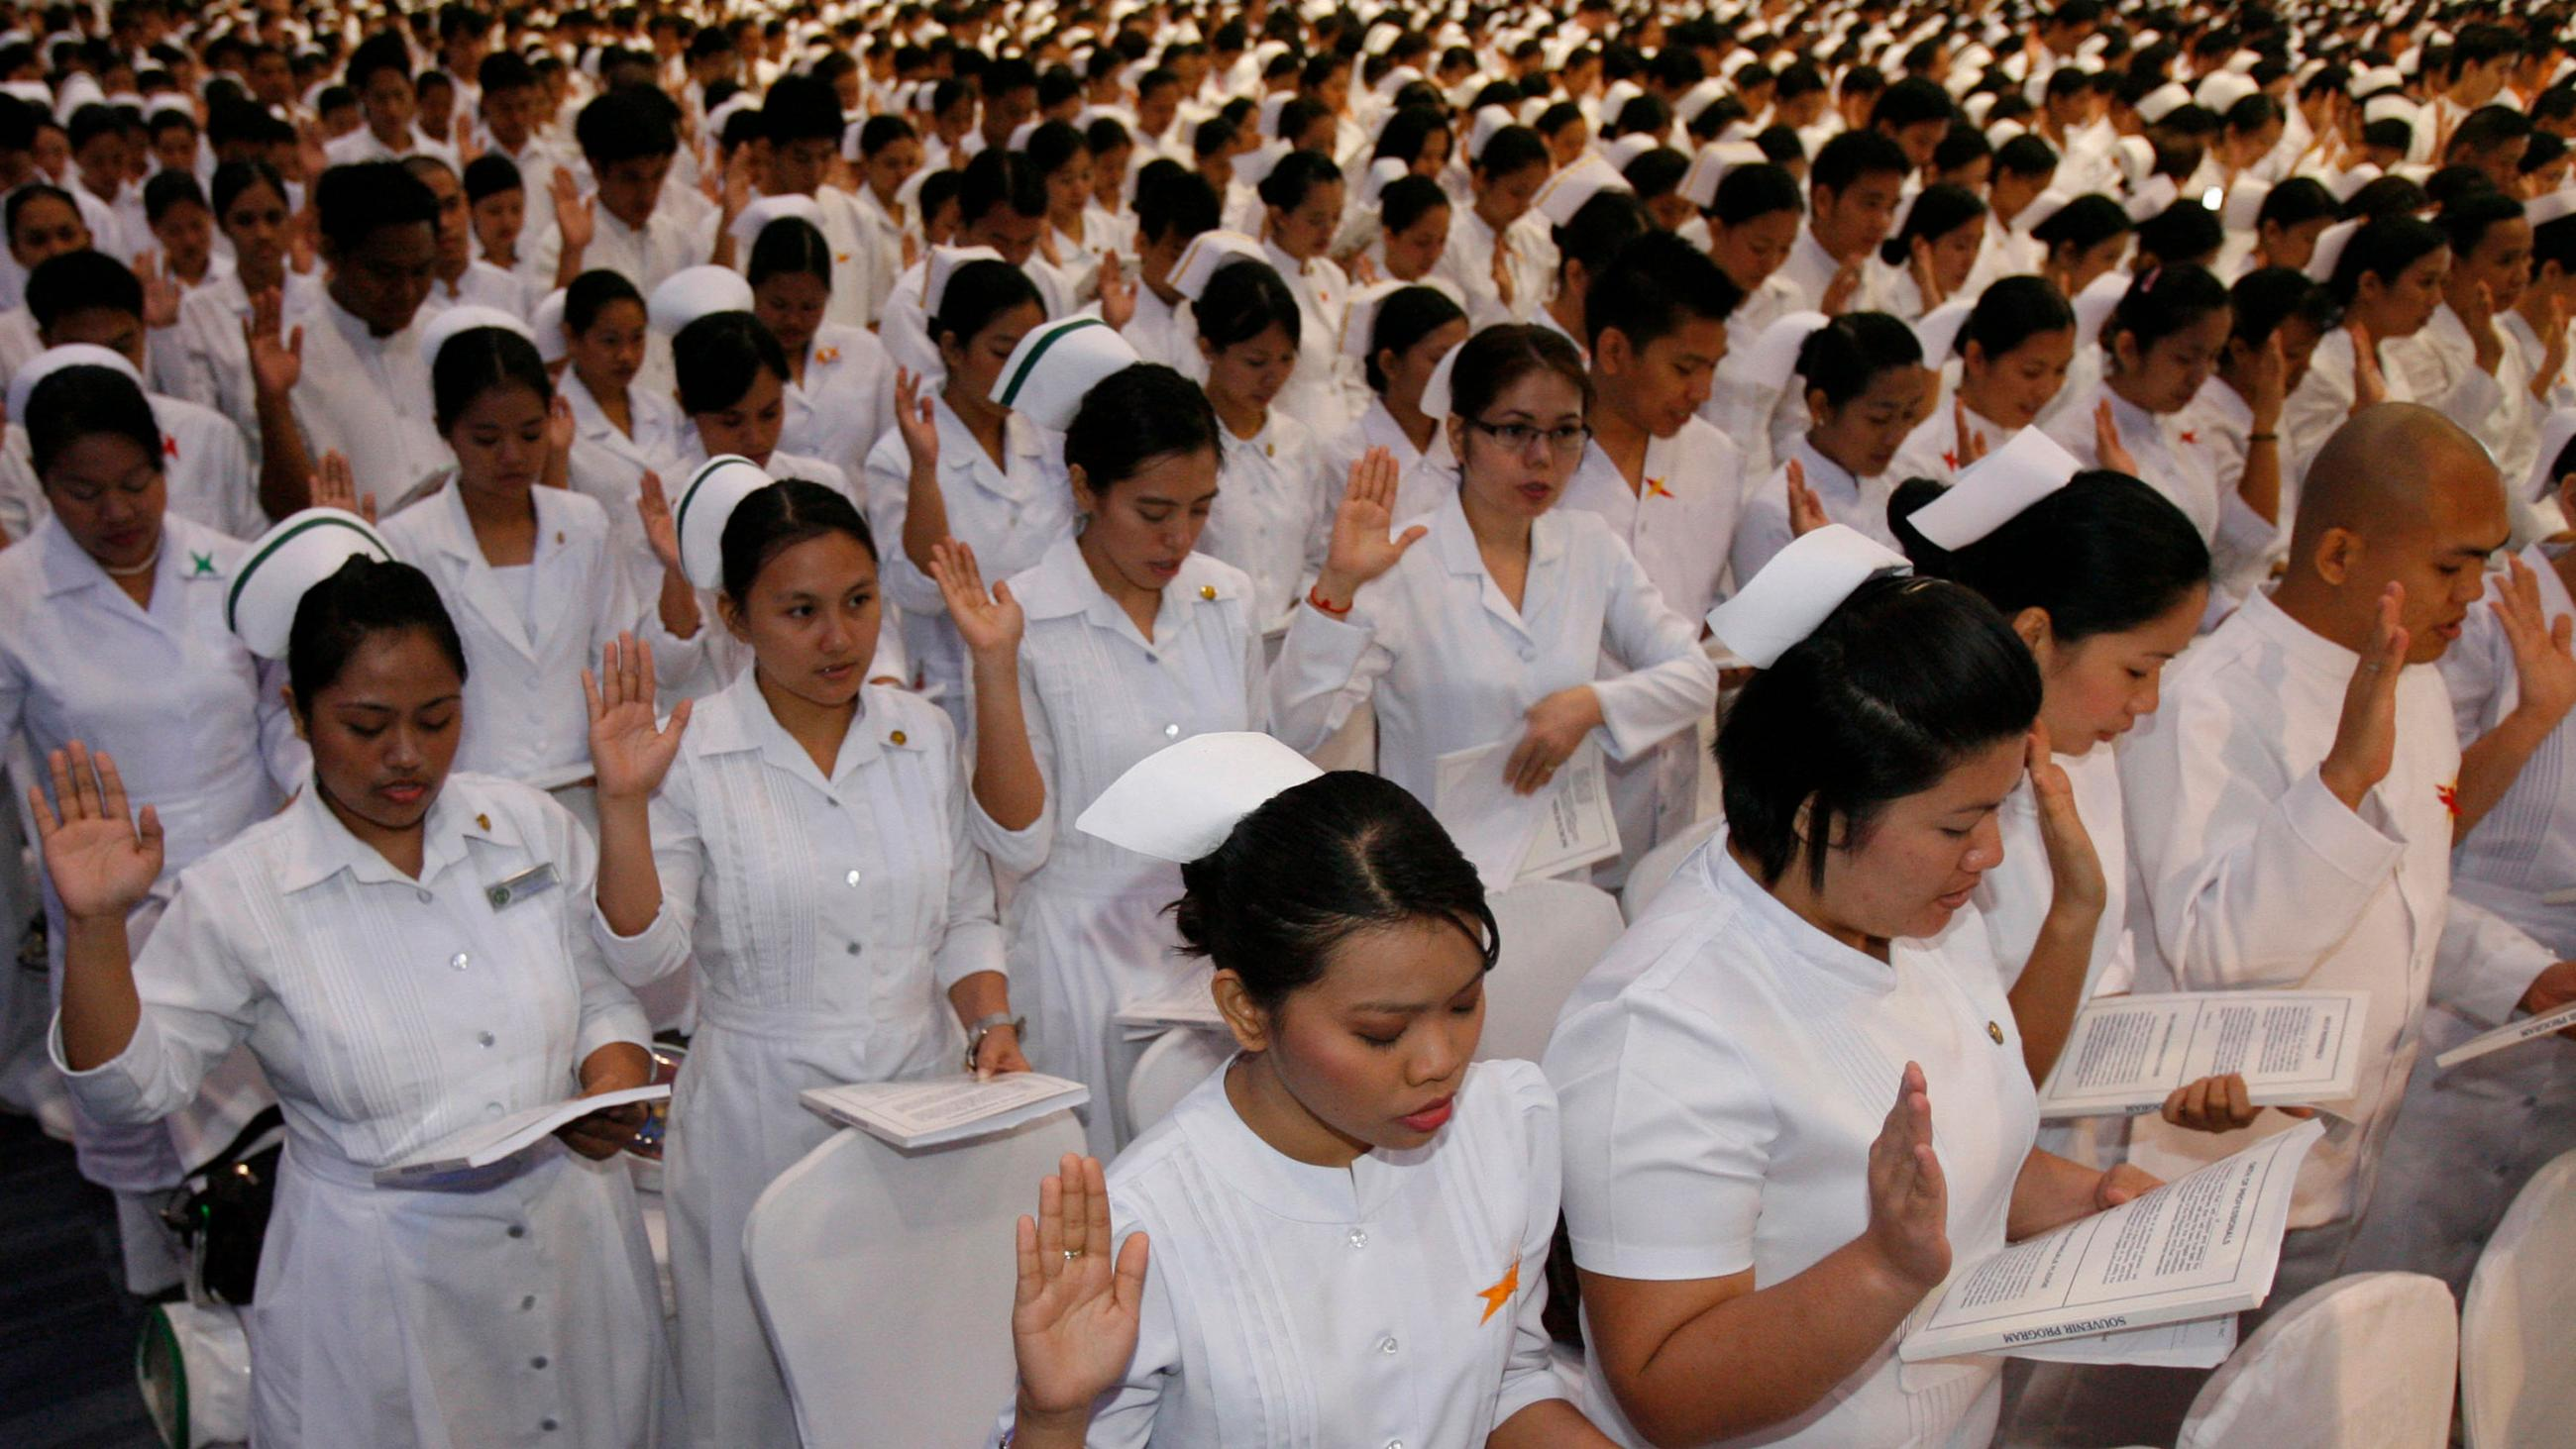 Picture shows thousands and thousands of nurses in uniform lined up with right hands raised reading from a thick packet. The women have traditional nurse caps, but the men's heads are bare.